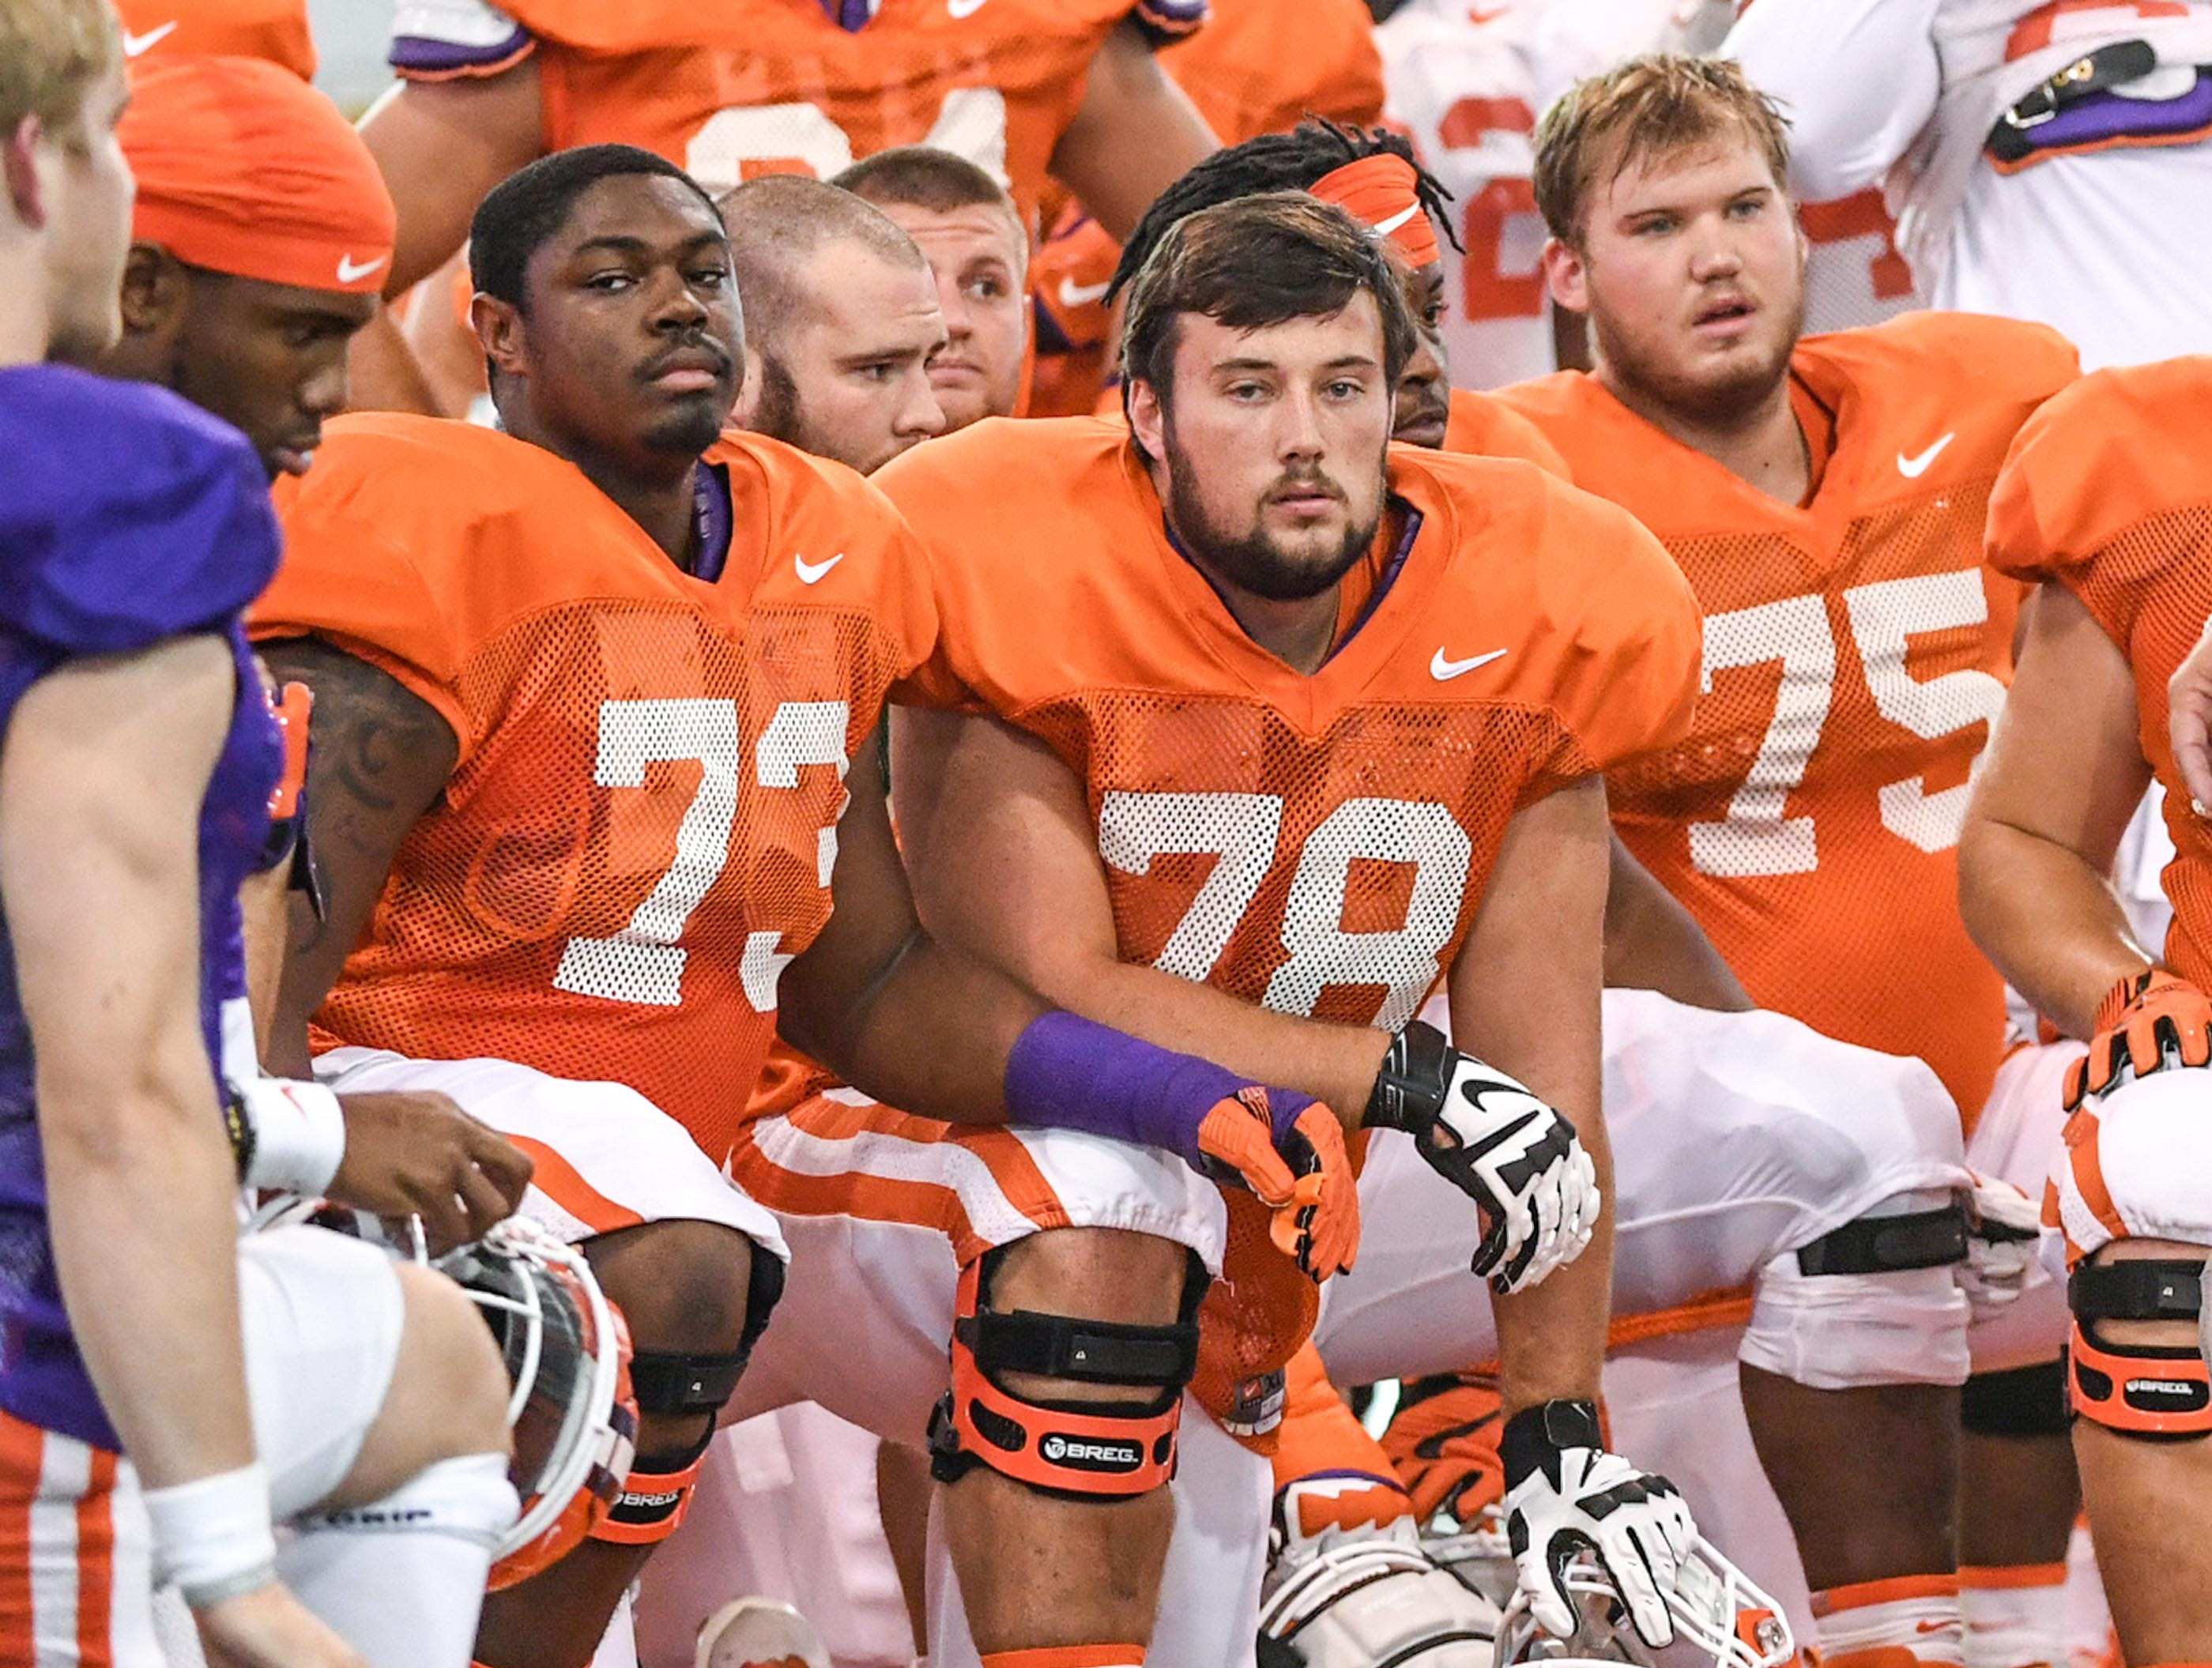 Offensive linemen, from left; Tremayne Anchrum (73), Chandler Reeves (78), and Mitch Hyatt (75) during fall practice in Clemson on Wednesday.